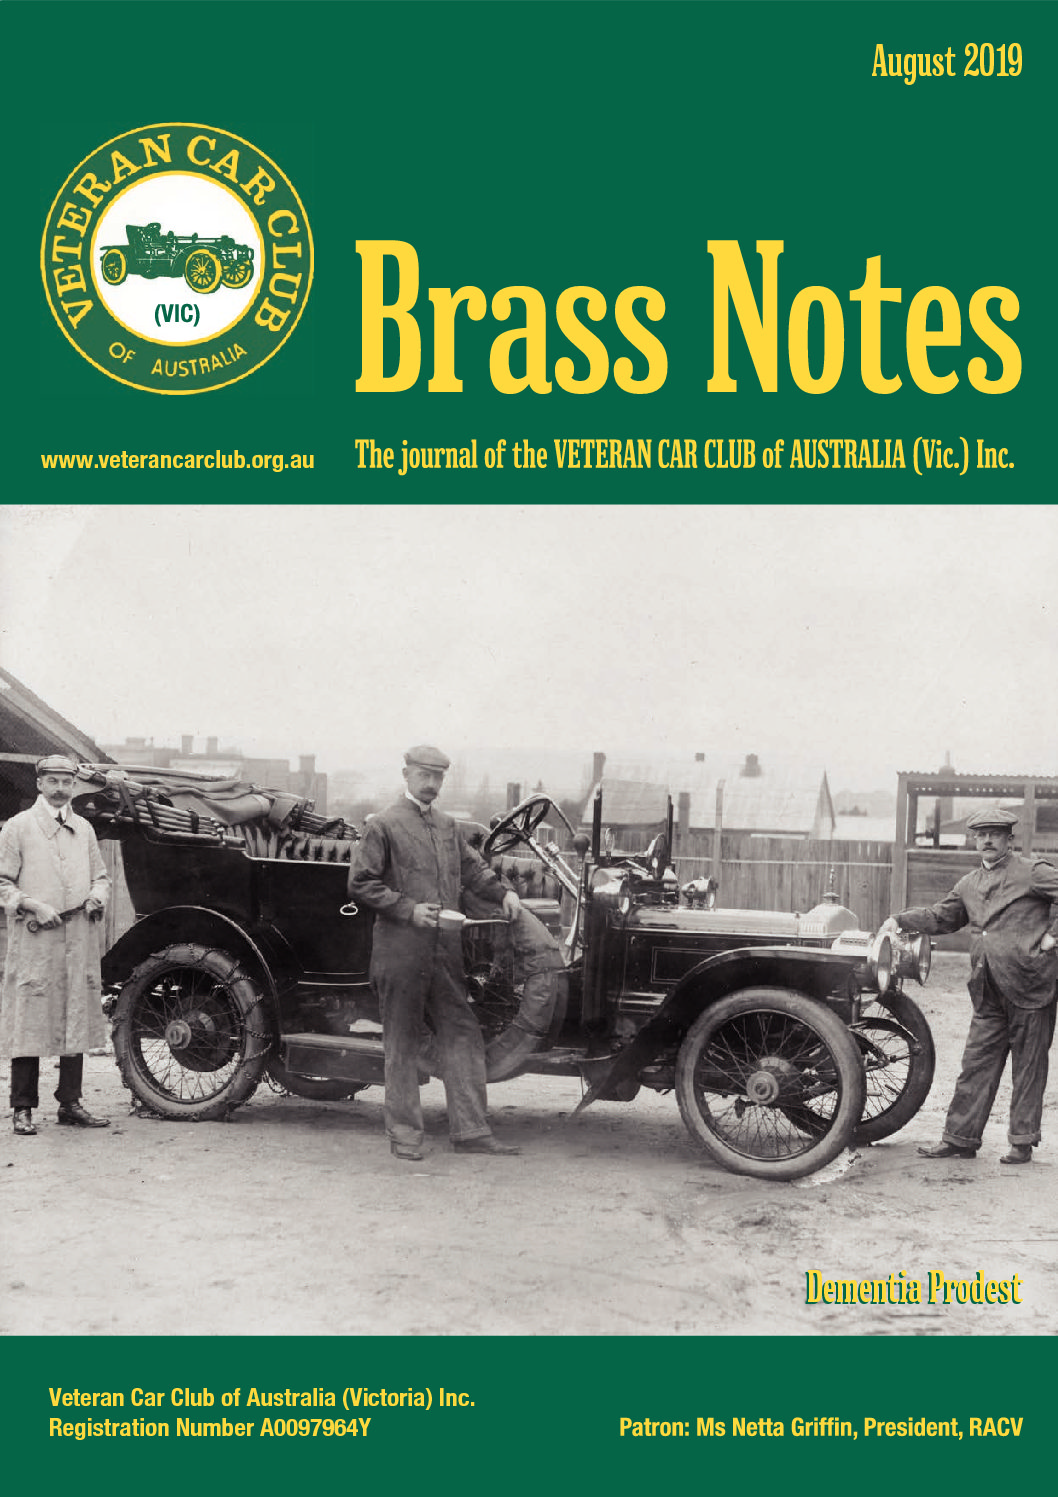 Brass Notes August 2019